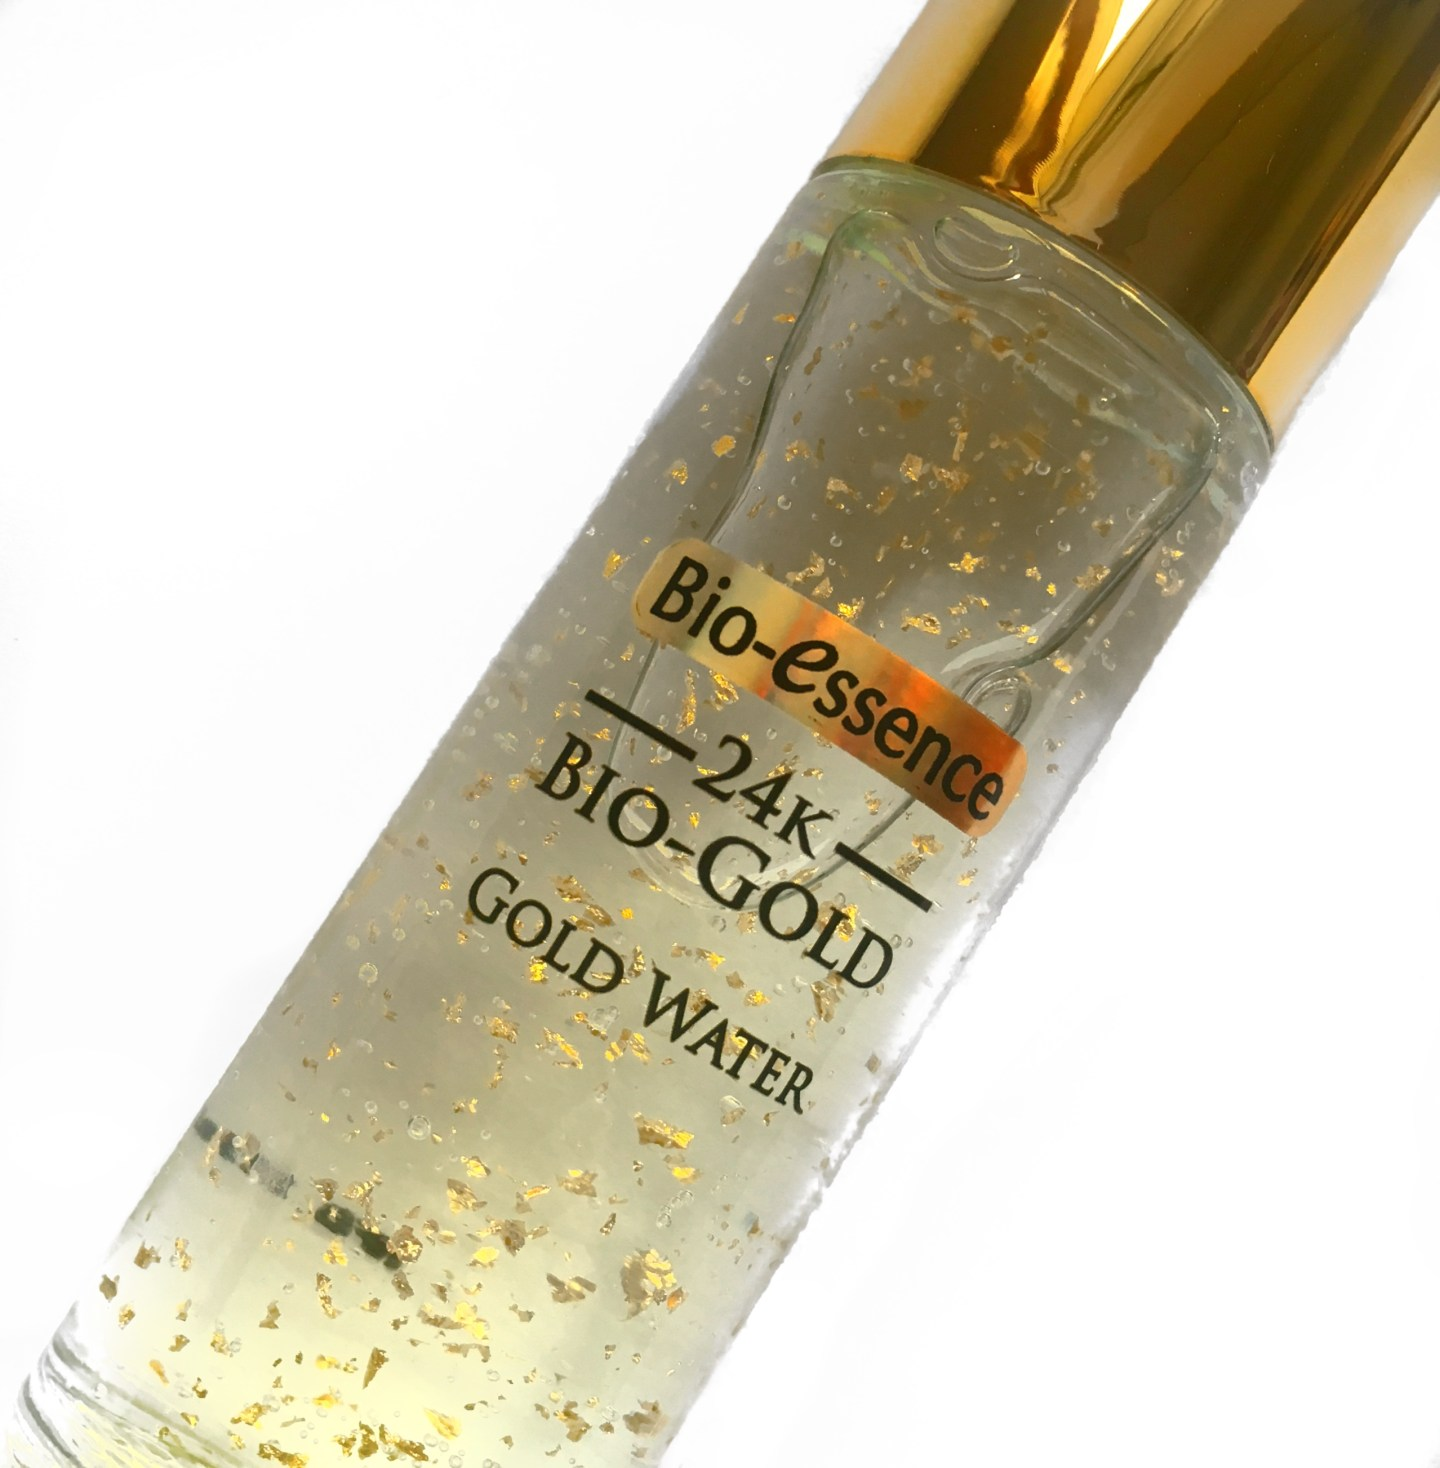 bioessence gold water luxury beauty review